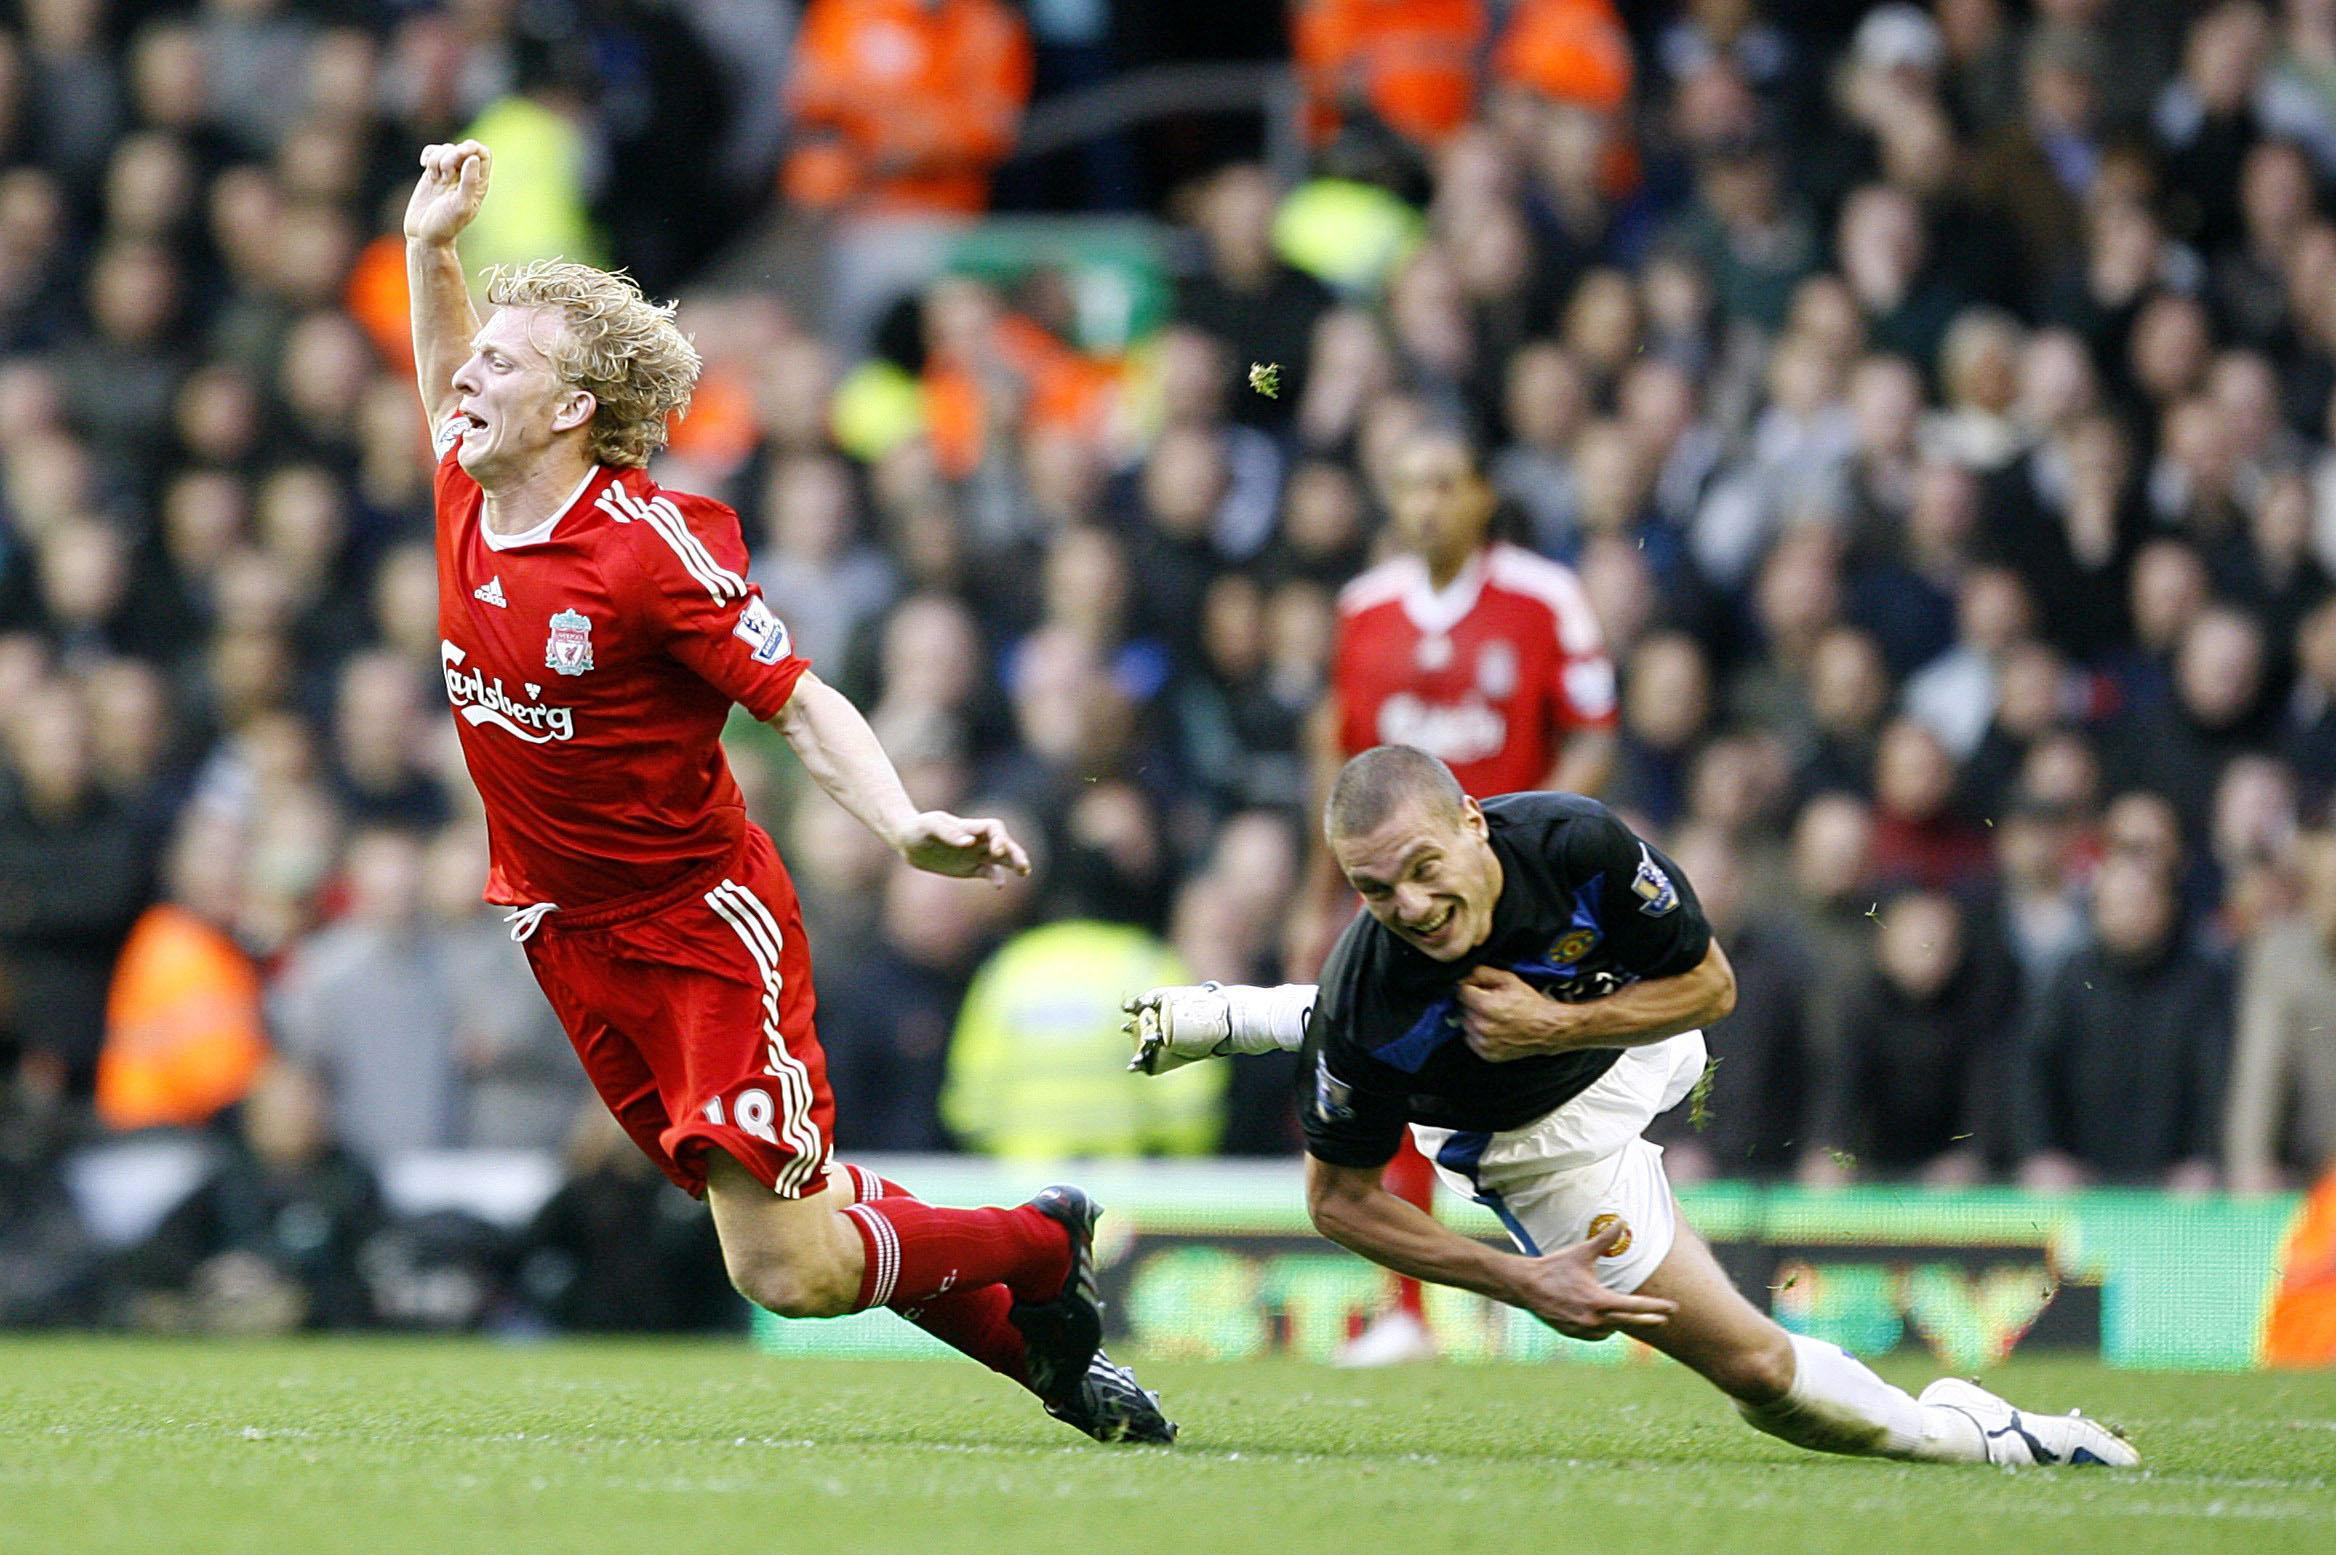 Hauling down Kuyt earned him his third red card in the fixture